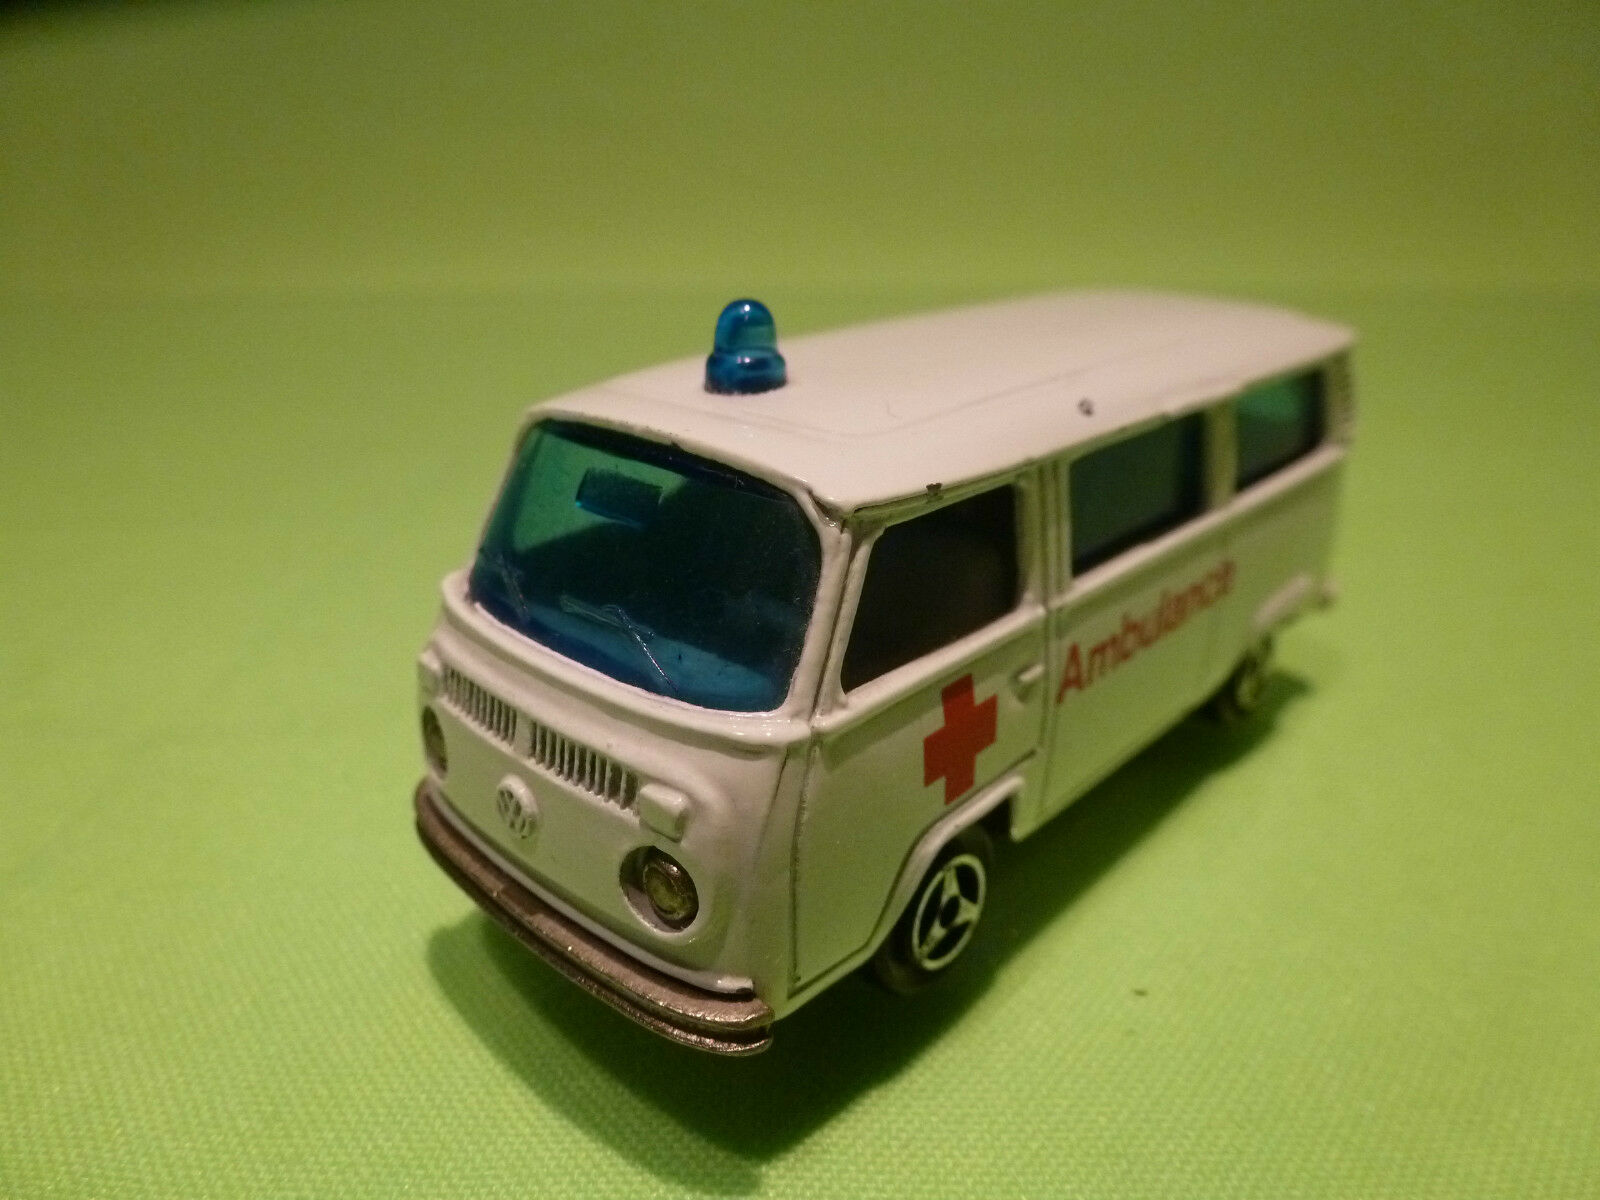 MAJORETTE 244 VW VOLKSWAGEN T2 - AMBULANCE 1 60 - RARE SELTEN - GOOD CONDITION